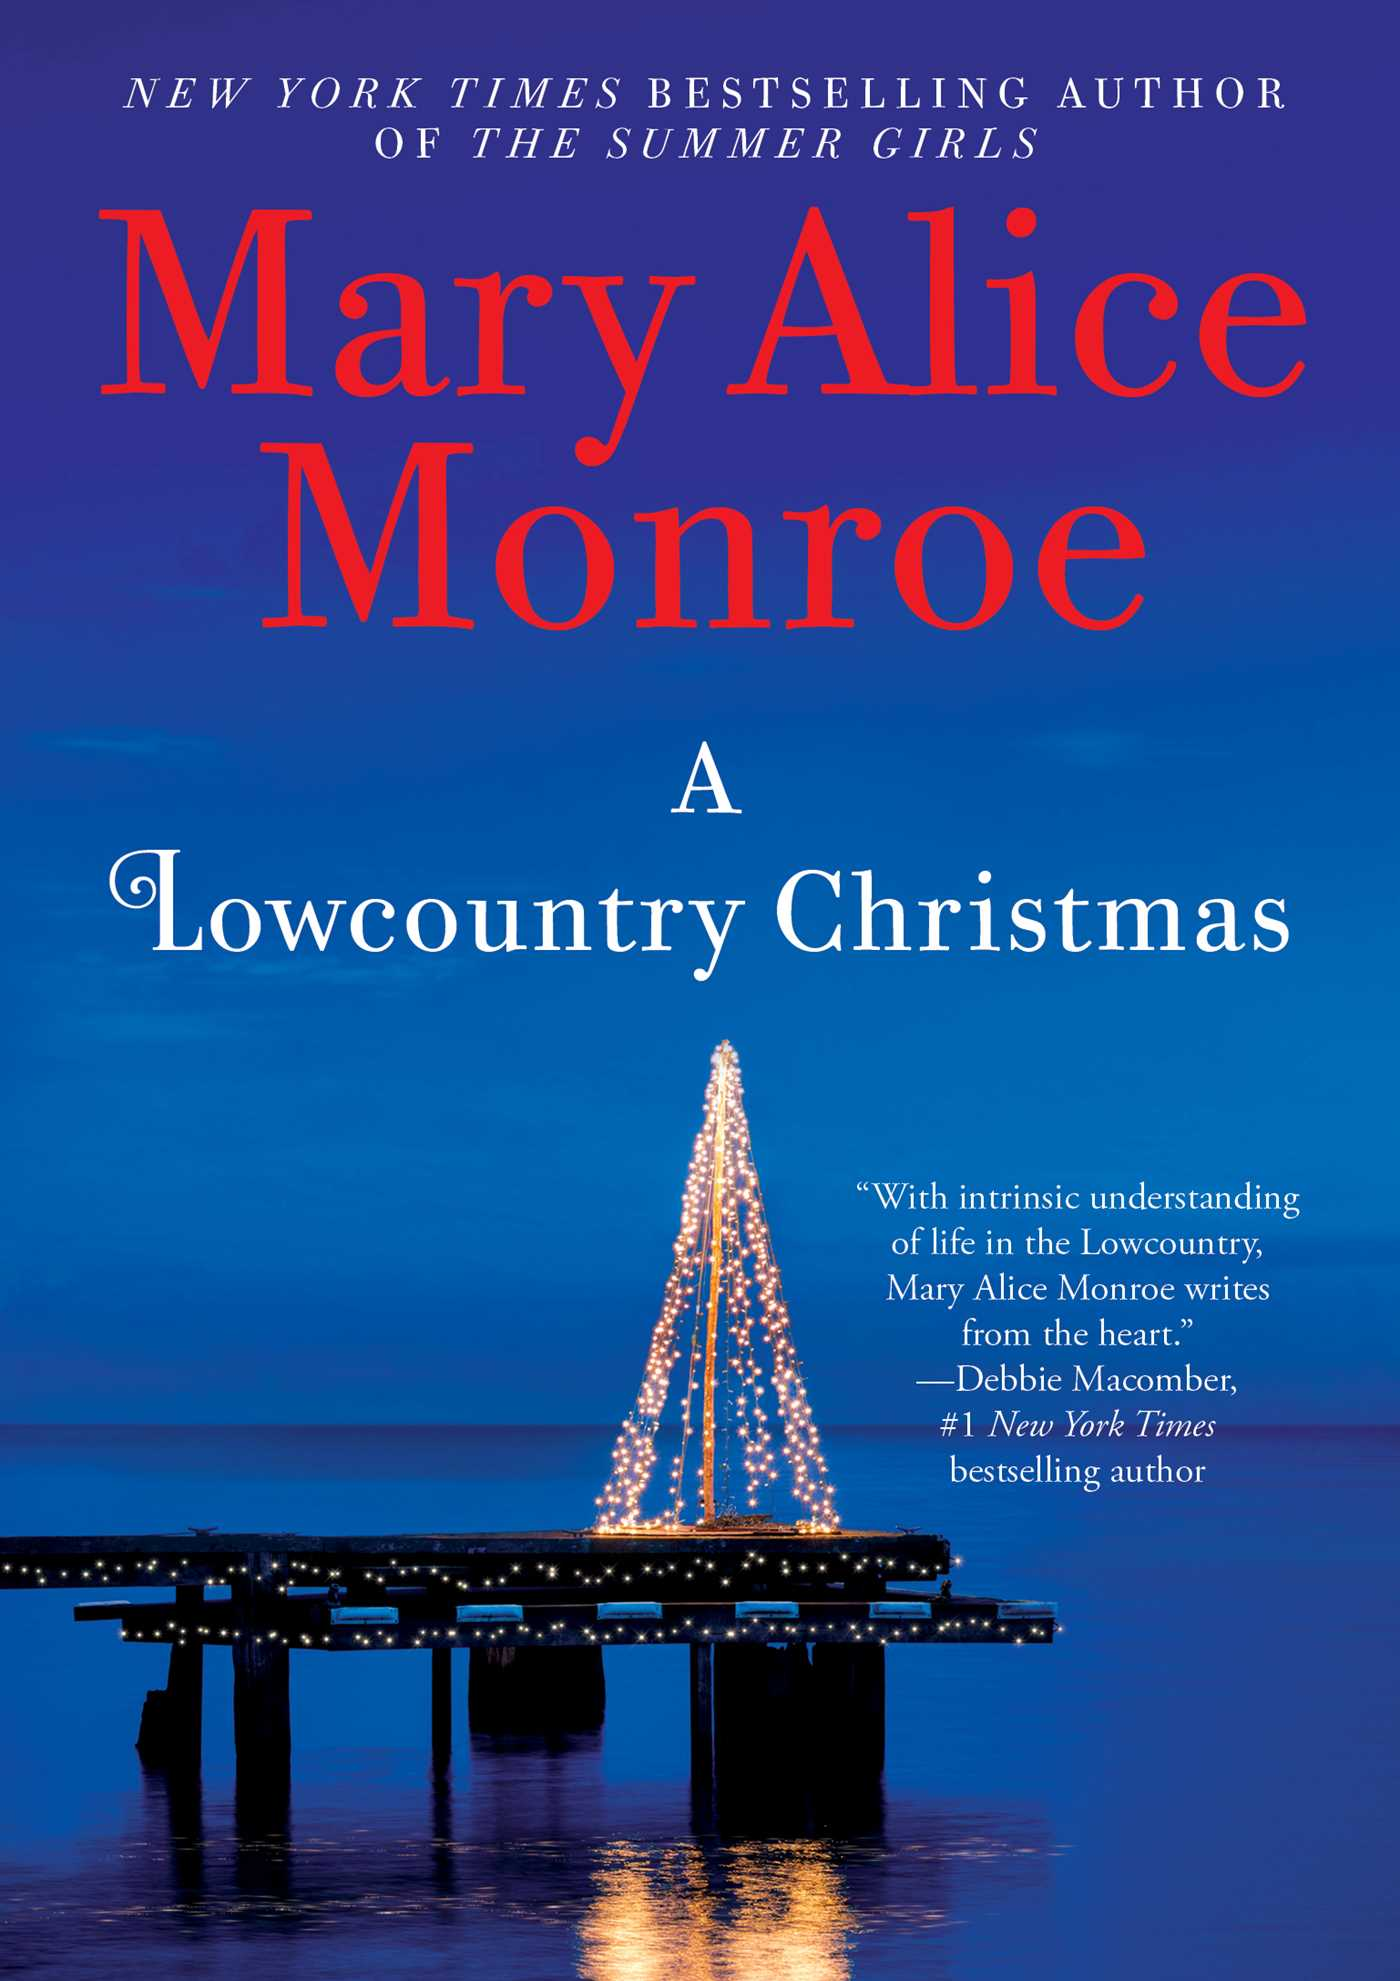 Cover of a Lowcountry Christmas, shows a lighted tree on a dock surrounded by water